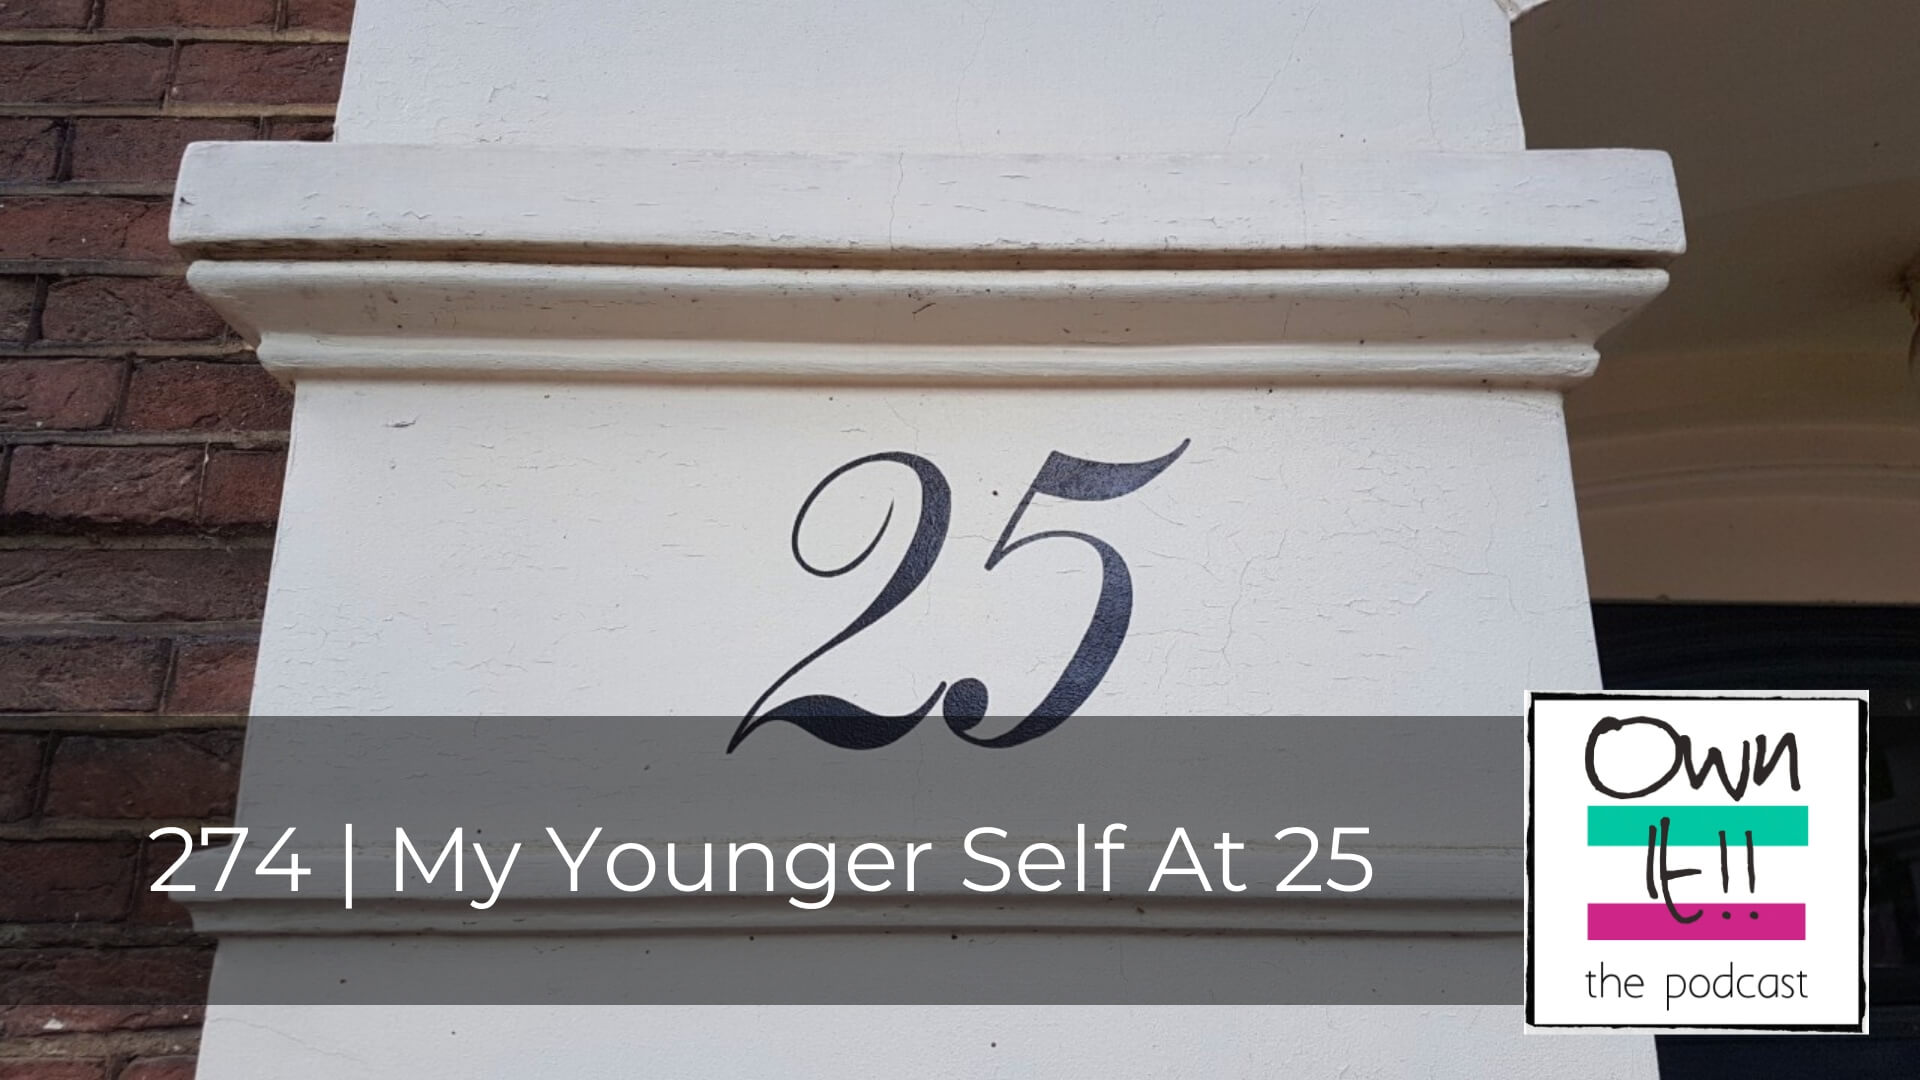 Own It! 274 | My Younger Self At 25